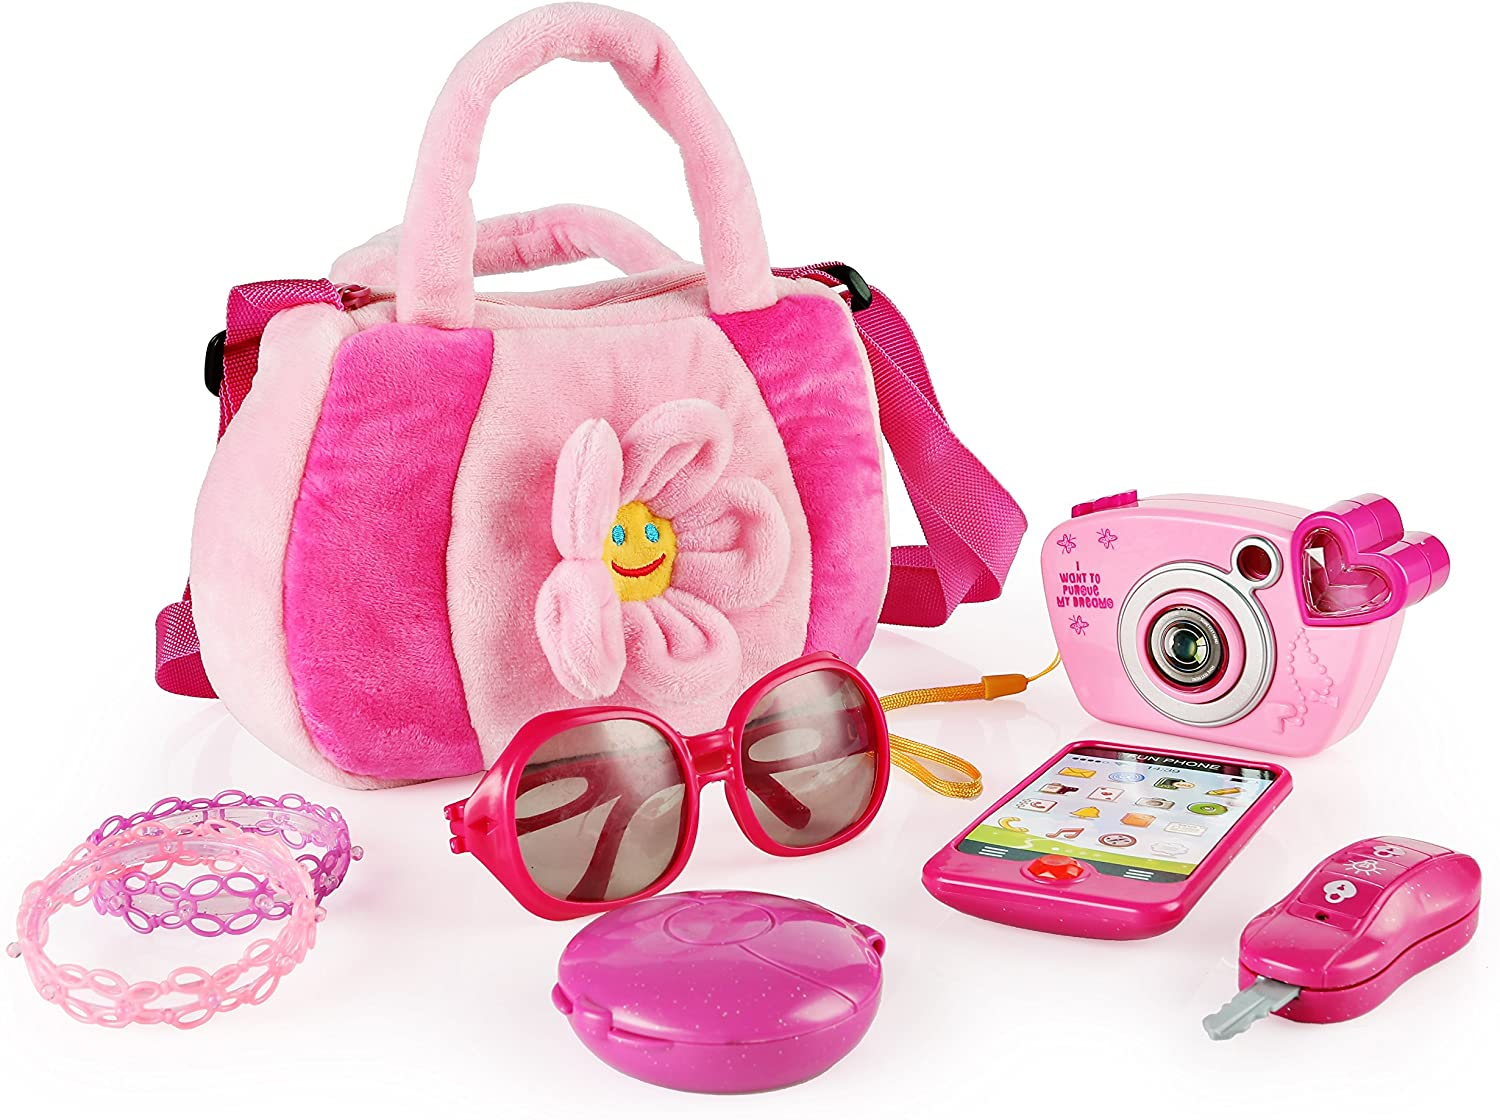 My First-Hand Bag Pretend Princess Play Set SainSmart Jr